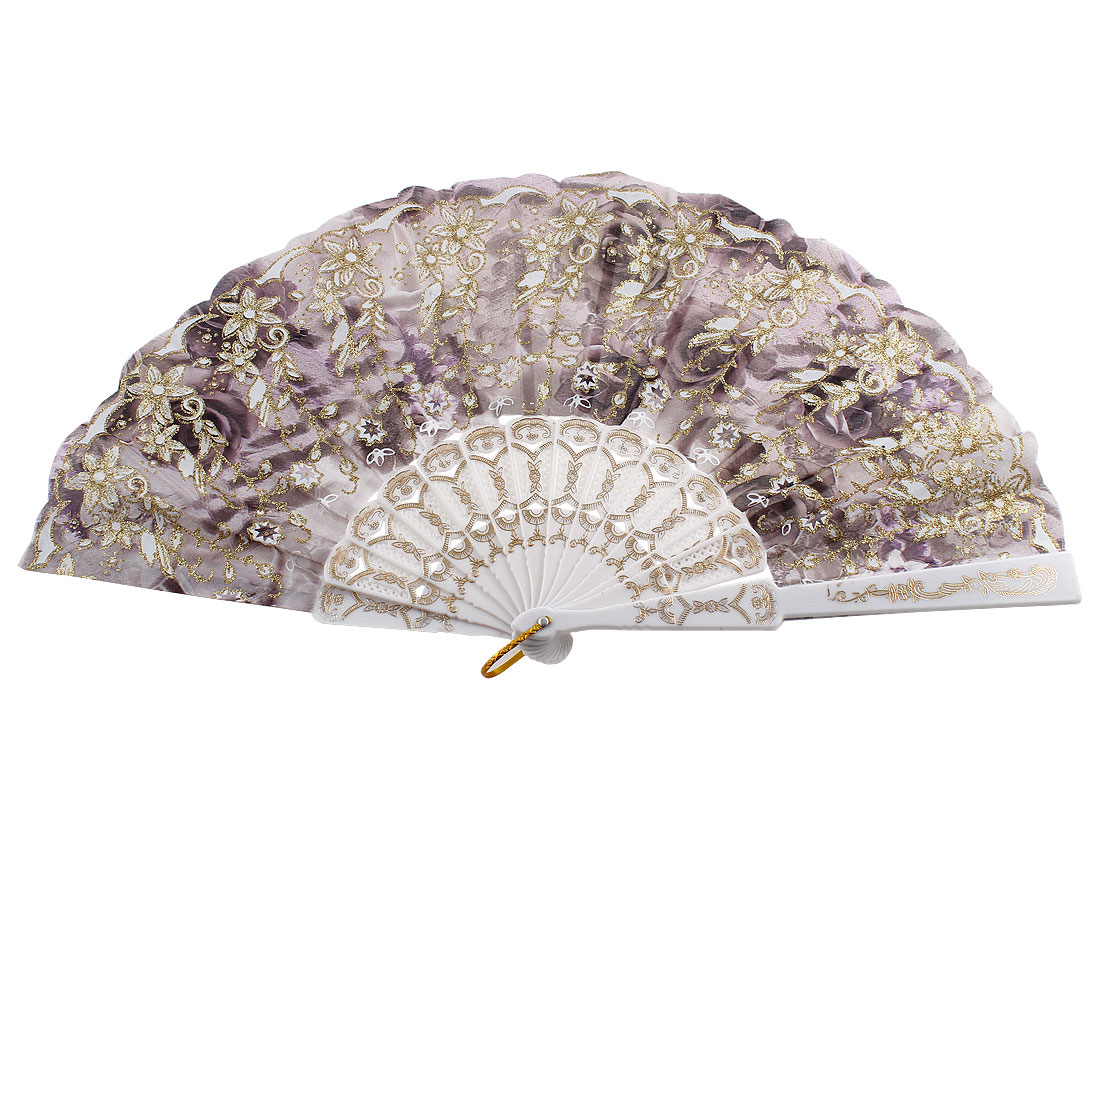 Hollow Out Rib Glittery Powder Accent Floral Printed Hand Fan Dark Purple